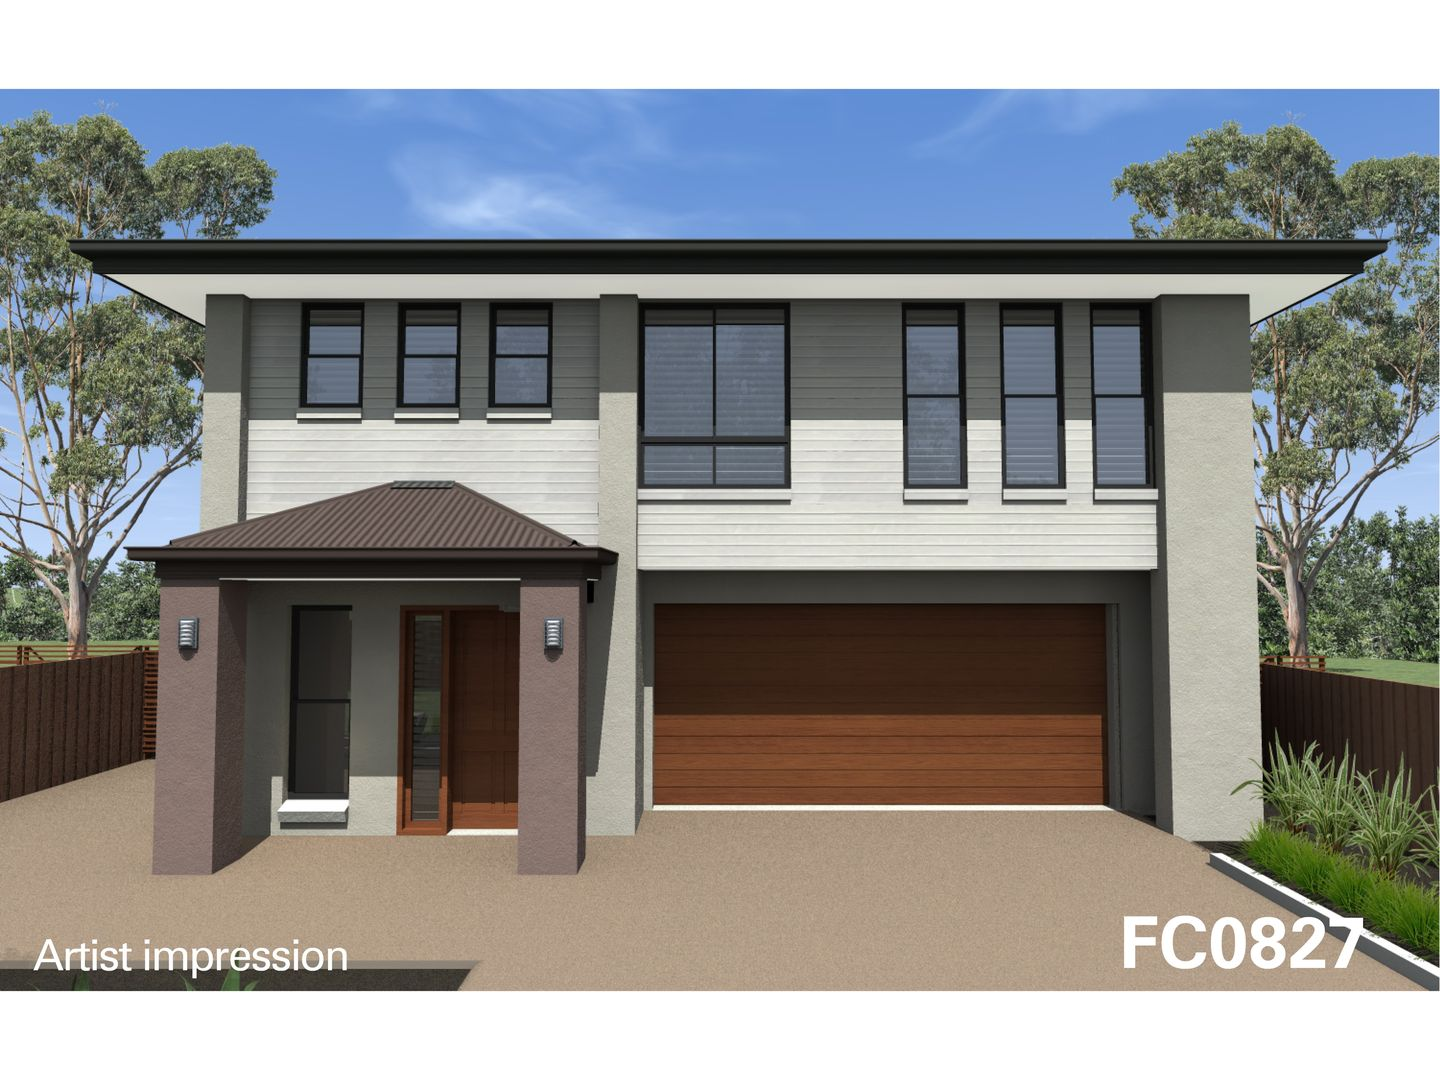 Lot 27 Gregor Crescent, Coomera QLD 4209, Image 0